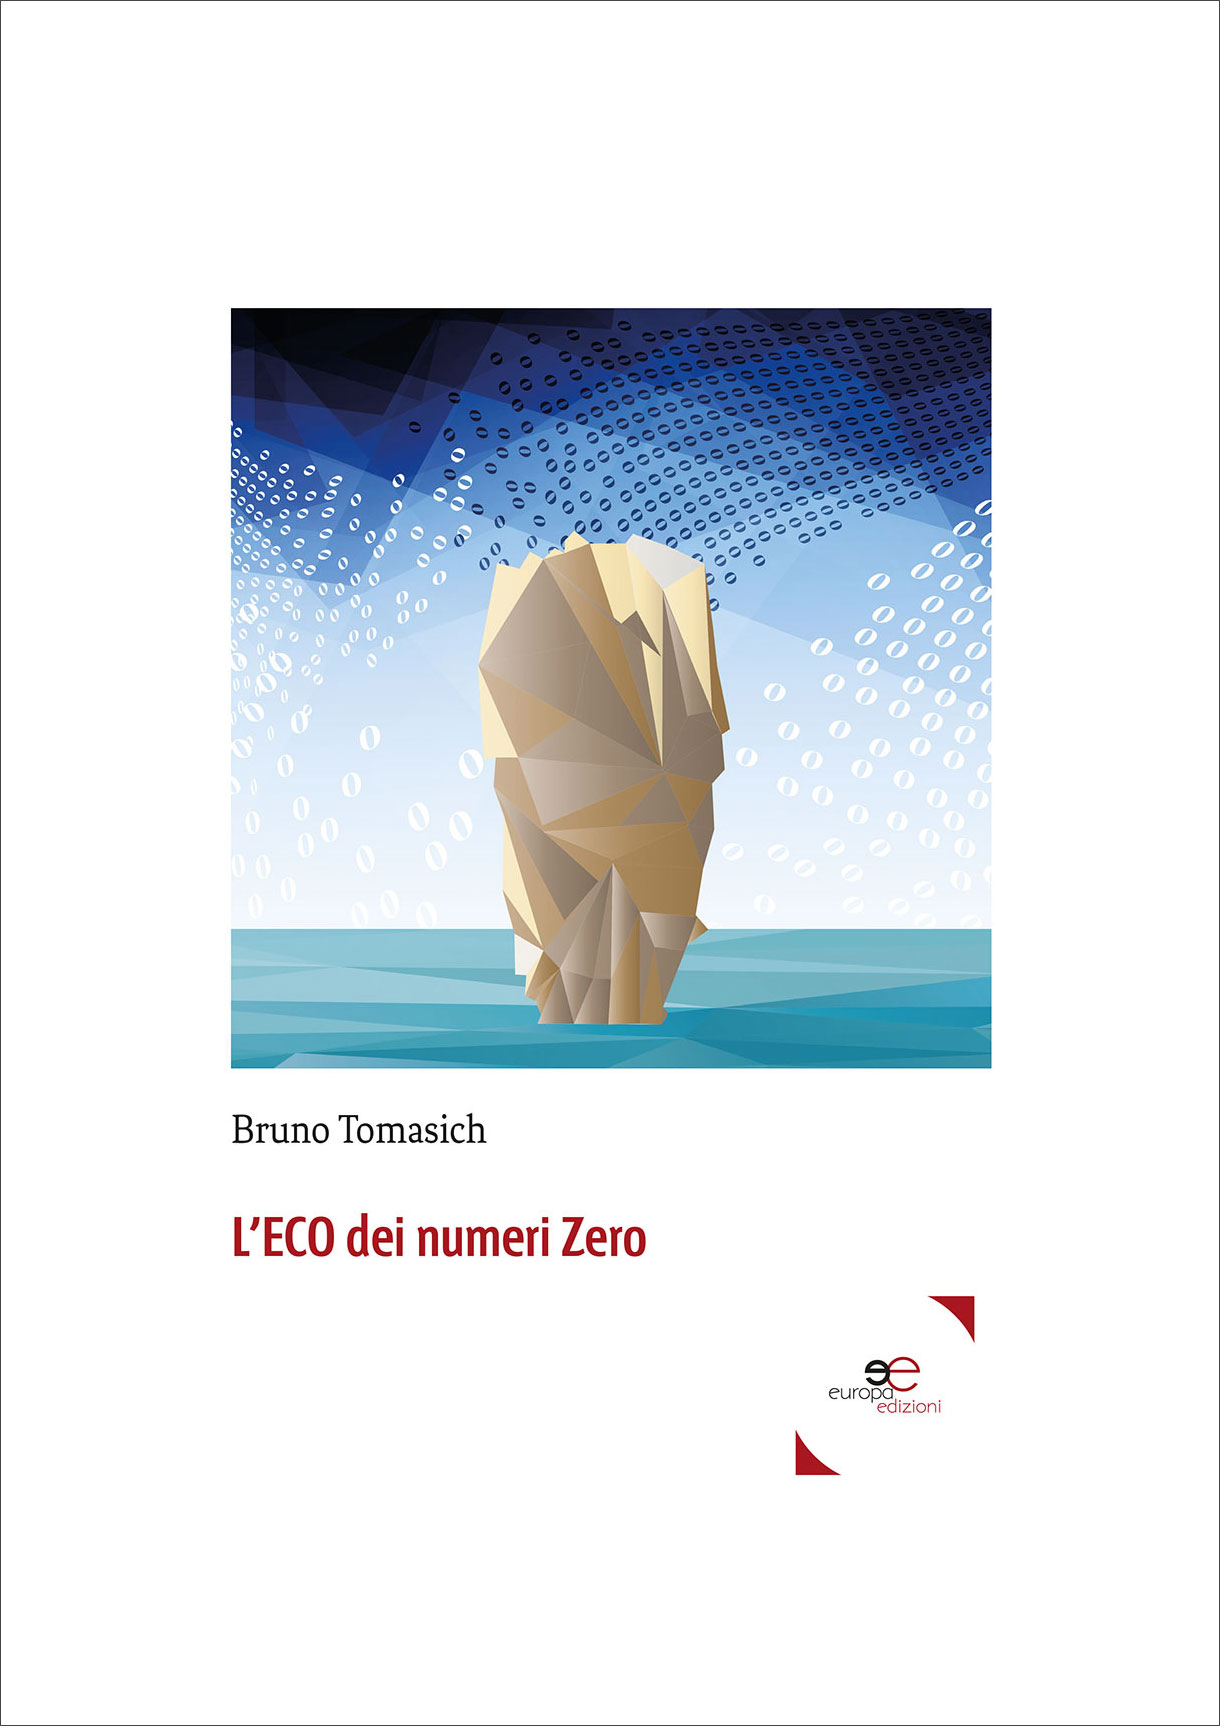 L'Eco dei numeri zero | Cover for Bruno Tomasich